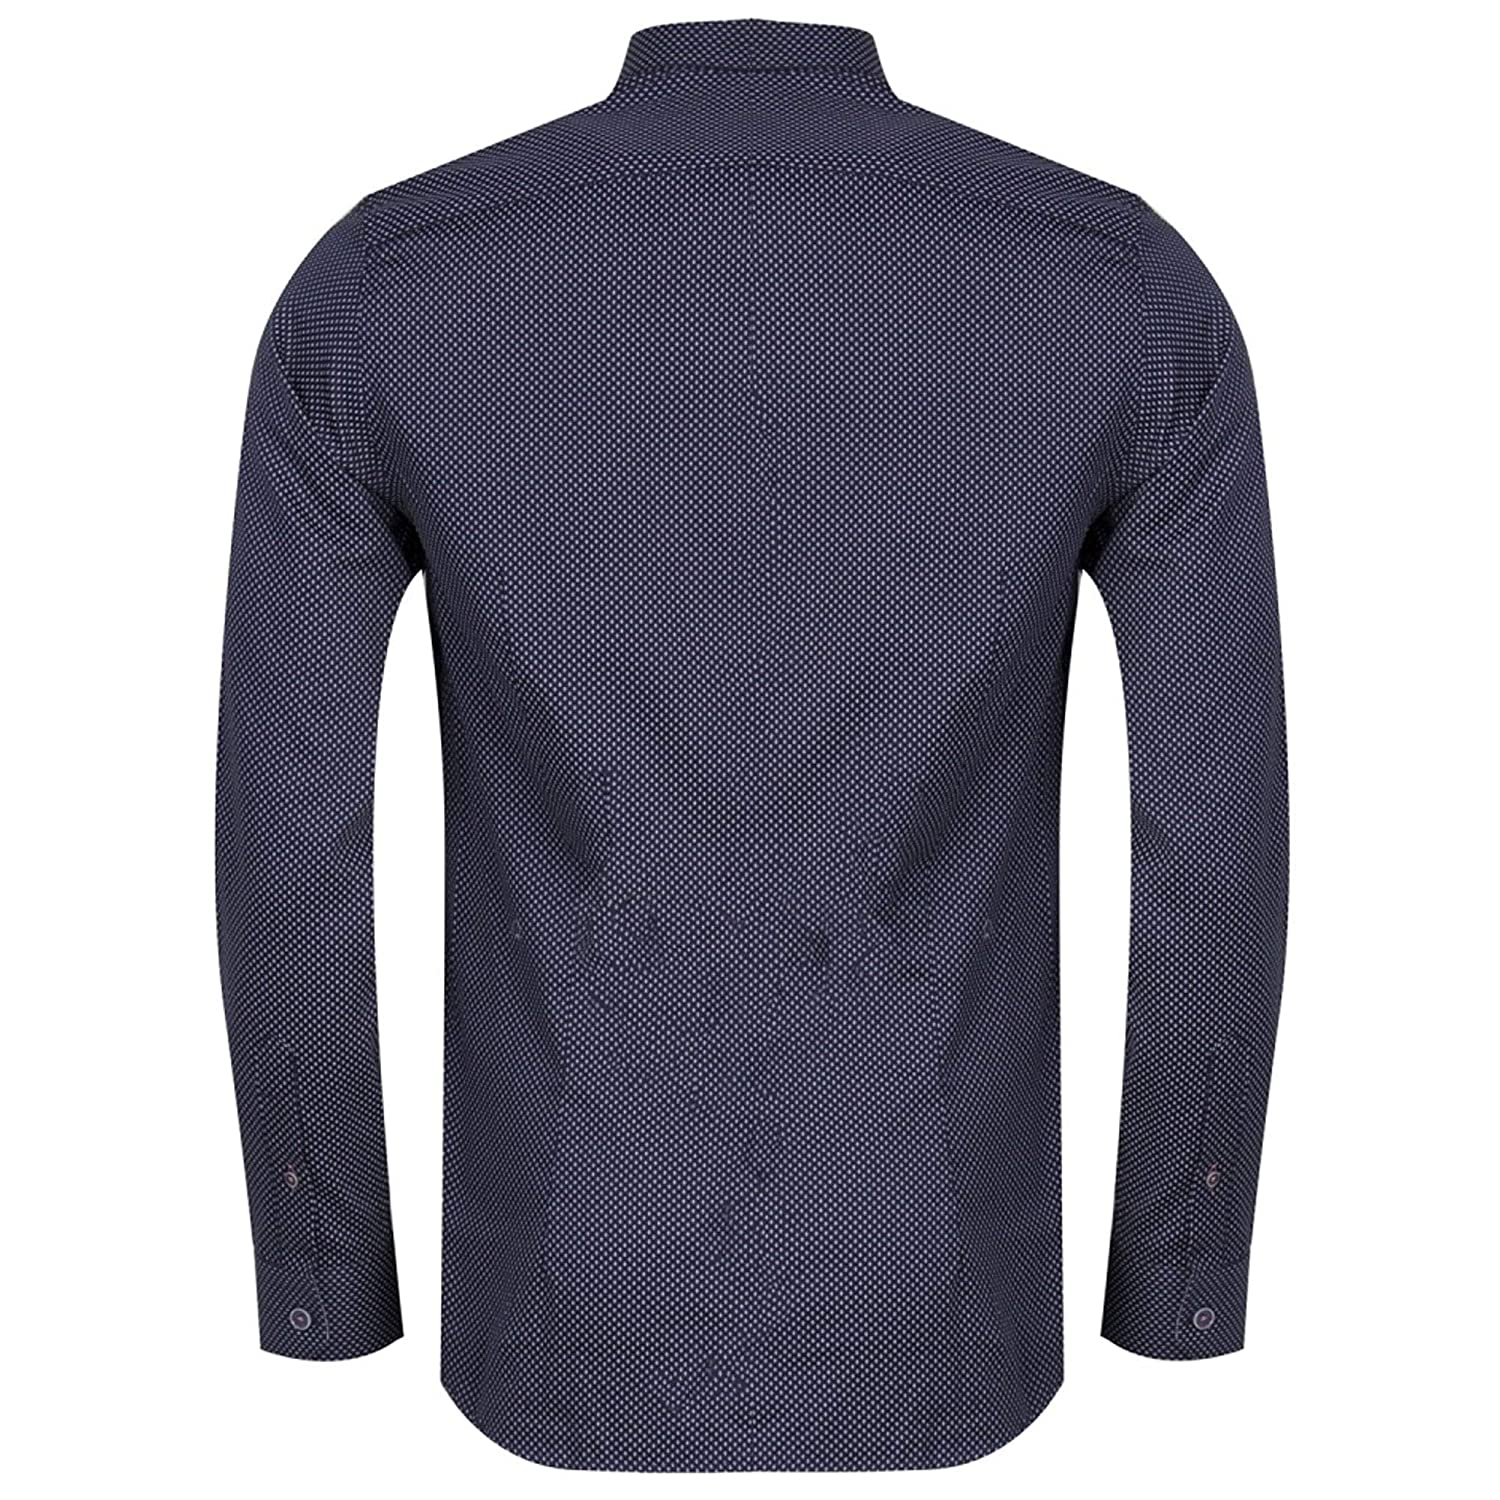 59e25357d6122 Ted Baker Boomtwn L S Micro Geo Printed Shirt Navy Small (TED Size 2)   Amazon.co.uk  Clothing